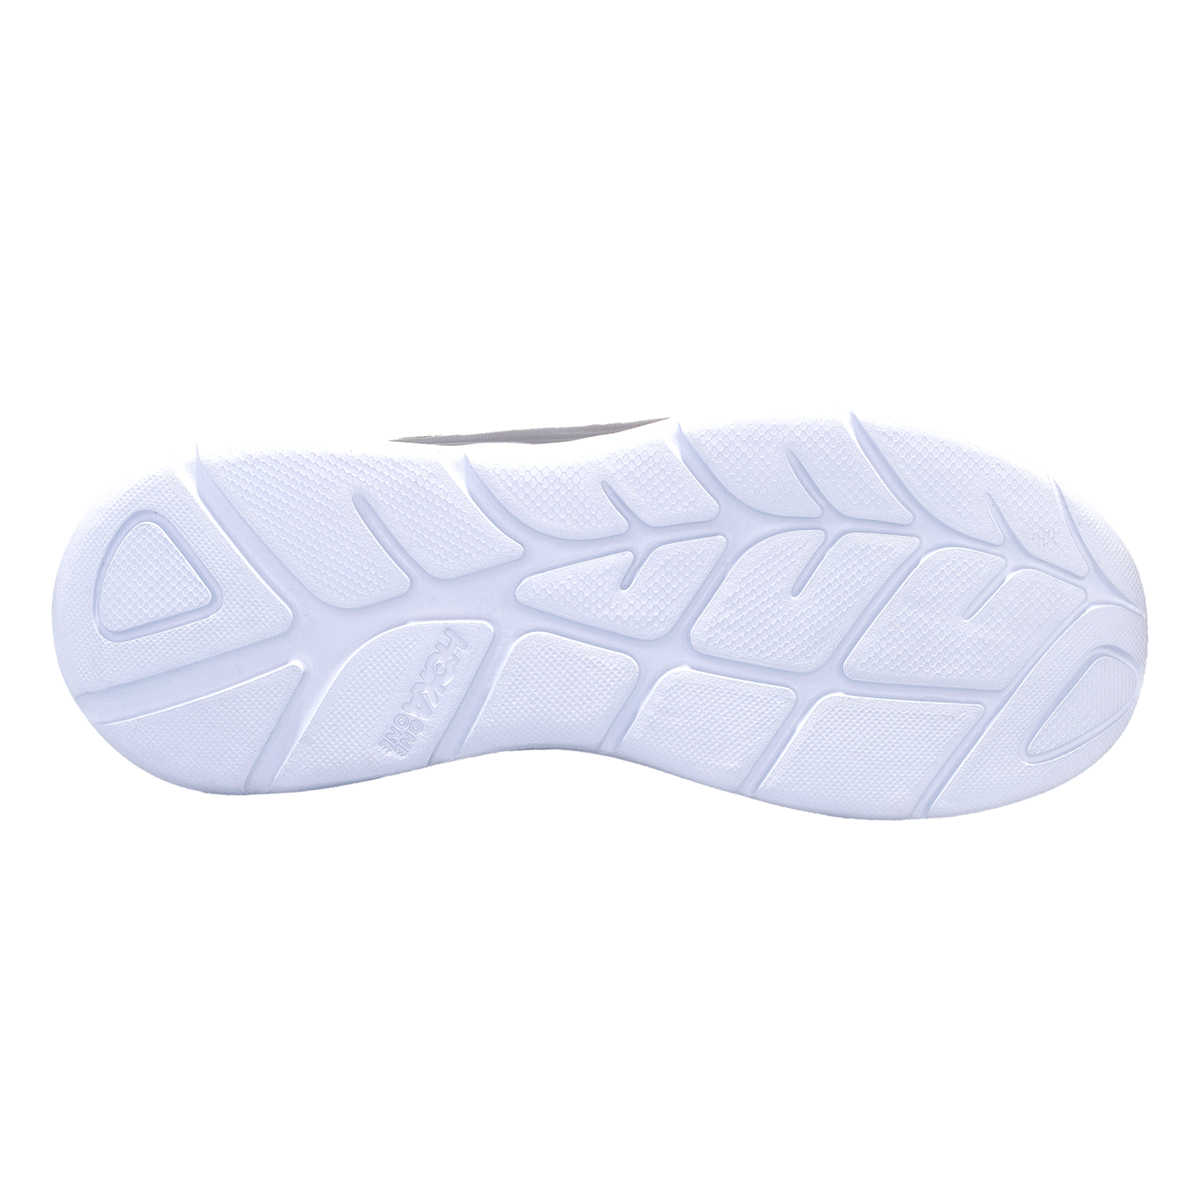 Women's Hoka One One Akasa Running Shoe - Color: Frost Gray/Sconce - Size: 5 - Width: Regular, Frost Gray/Sconce, large, image 4